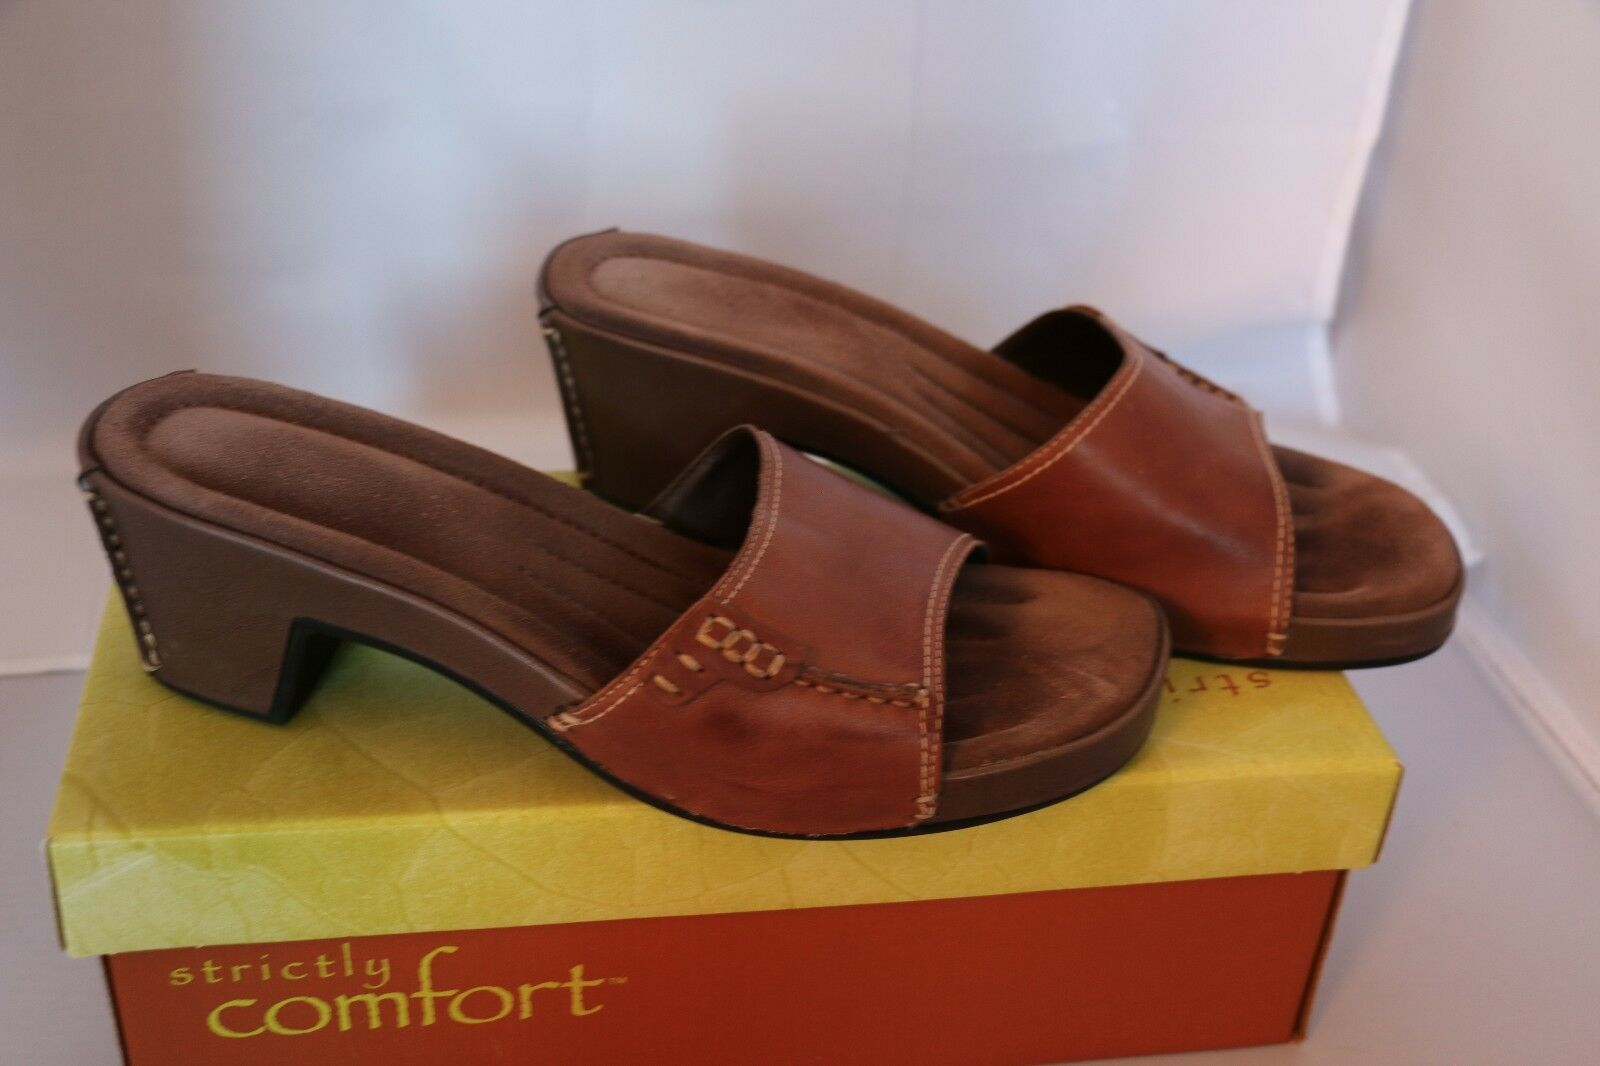 Women's Strictly Comfort Sandal Size - Brown - Size Sandal 8 cef596